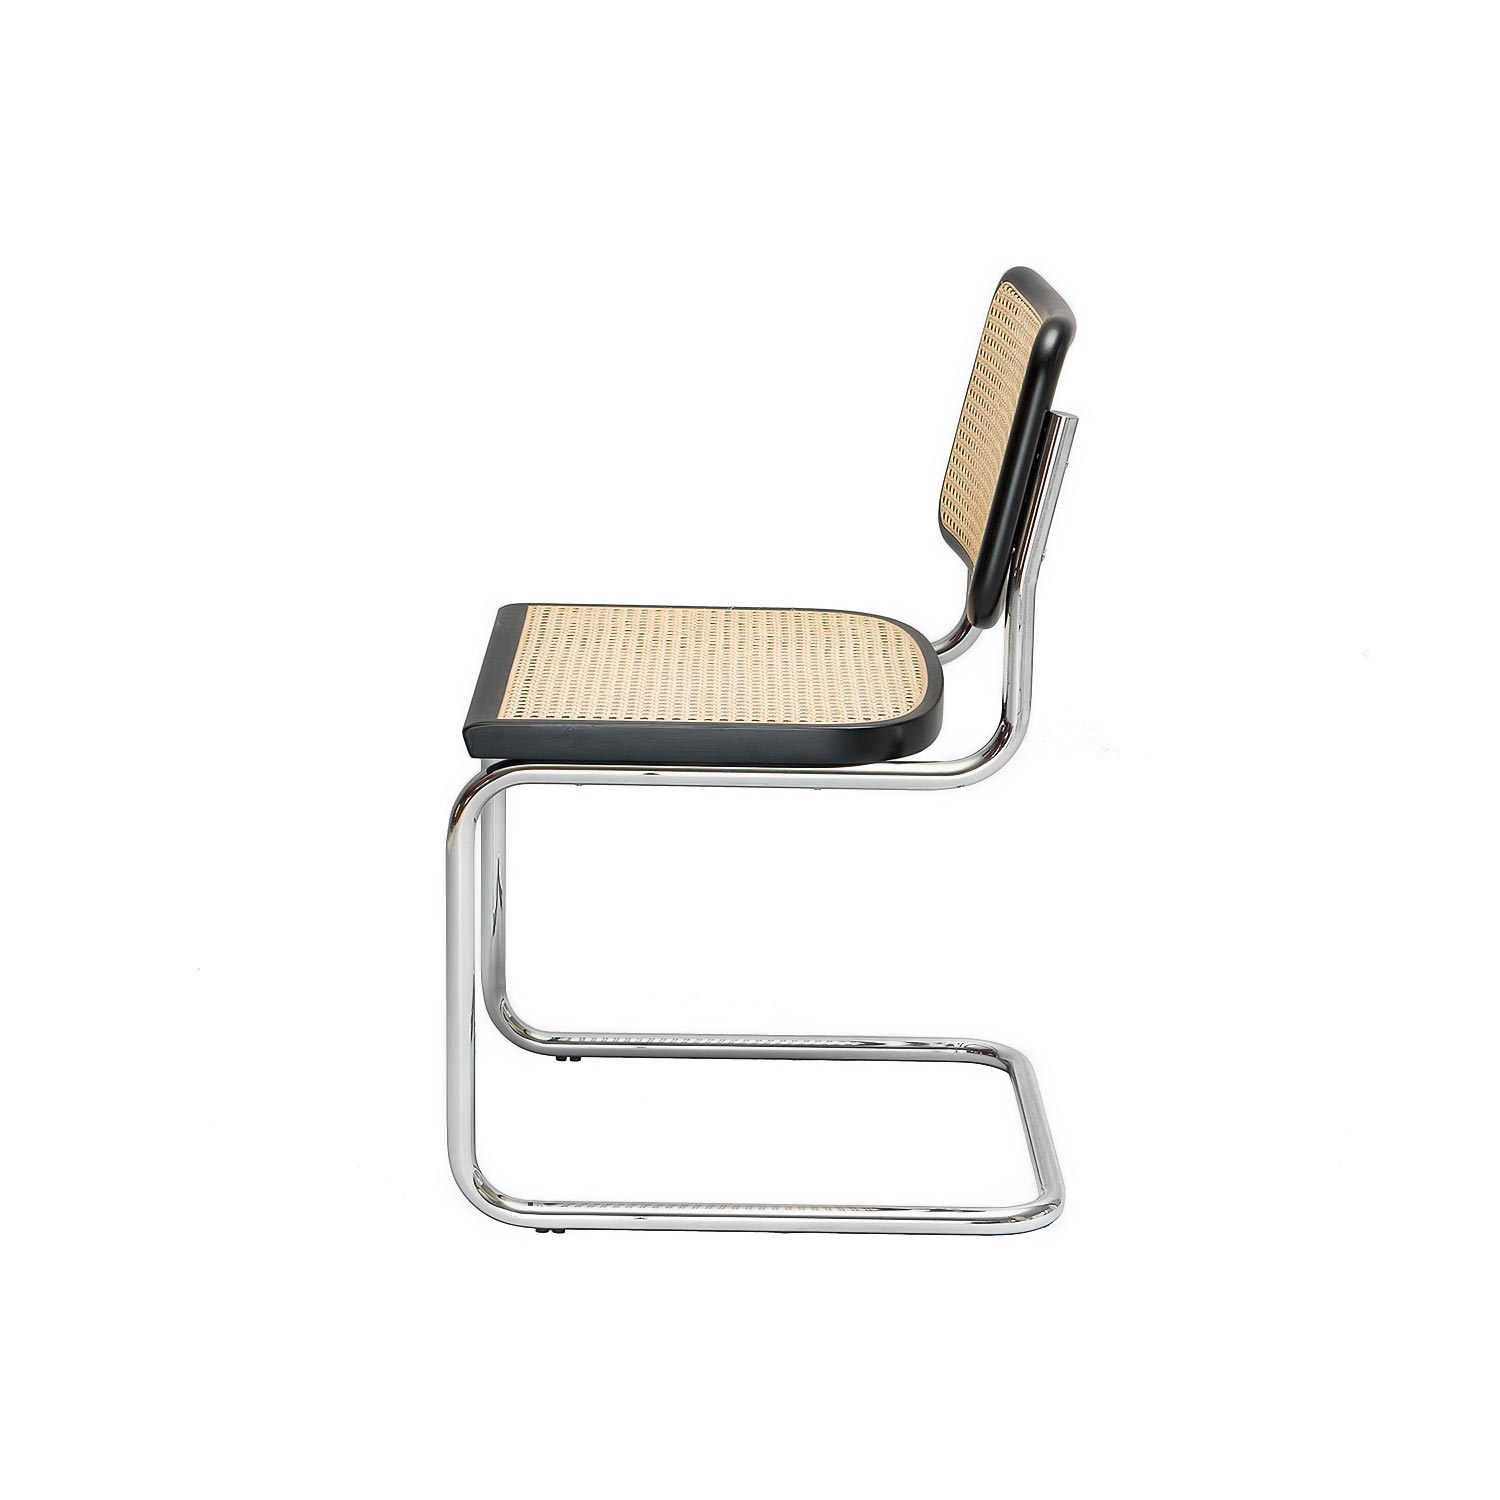 cesca chair b 32 designed by marcel breuer steelform design classics. Black Bedroom Furniture Sets. Home Design Ideas